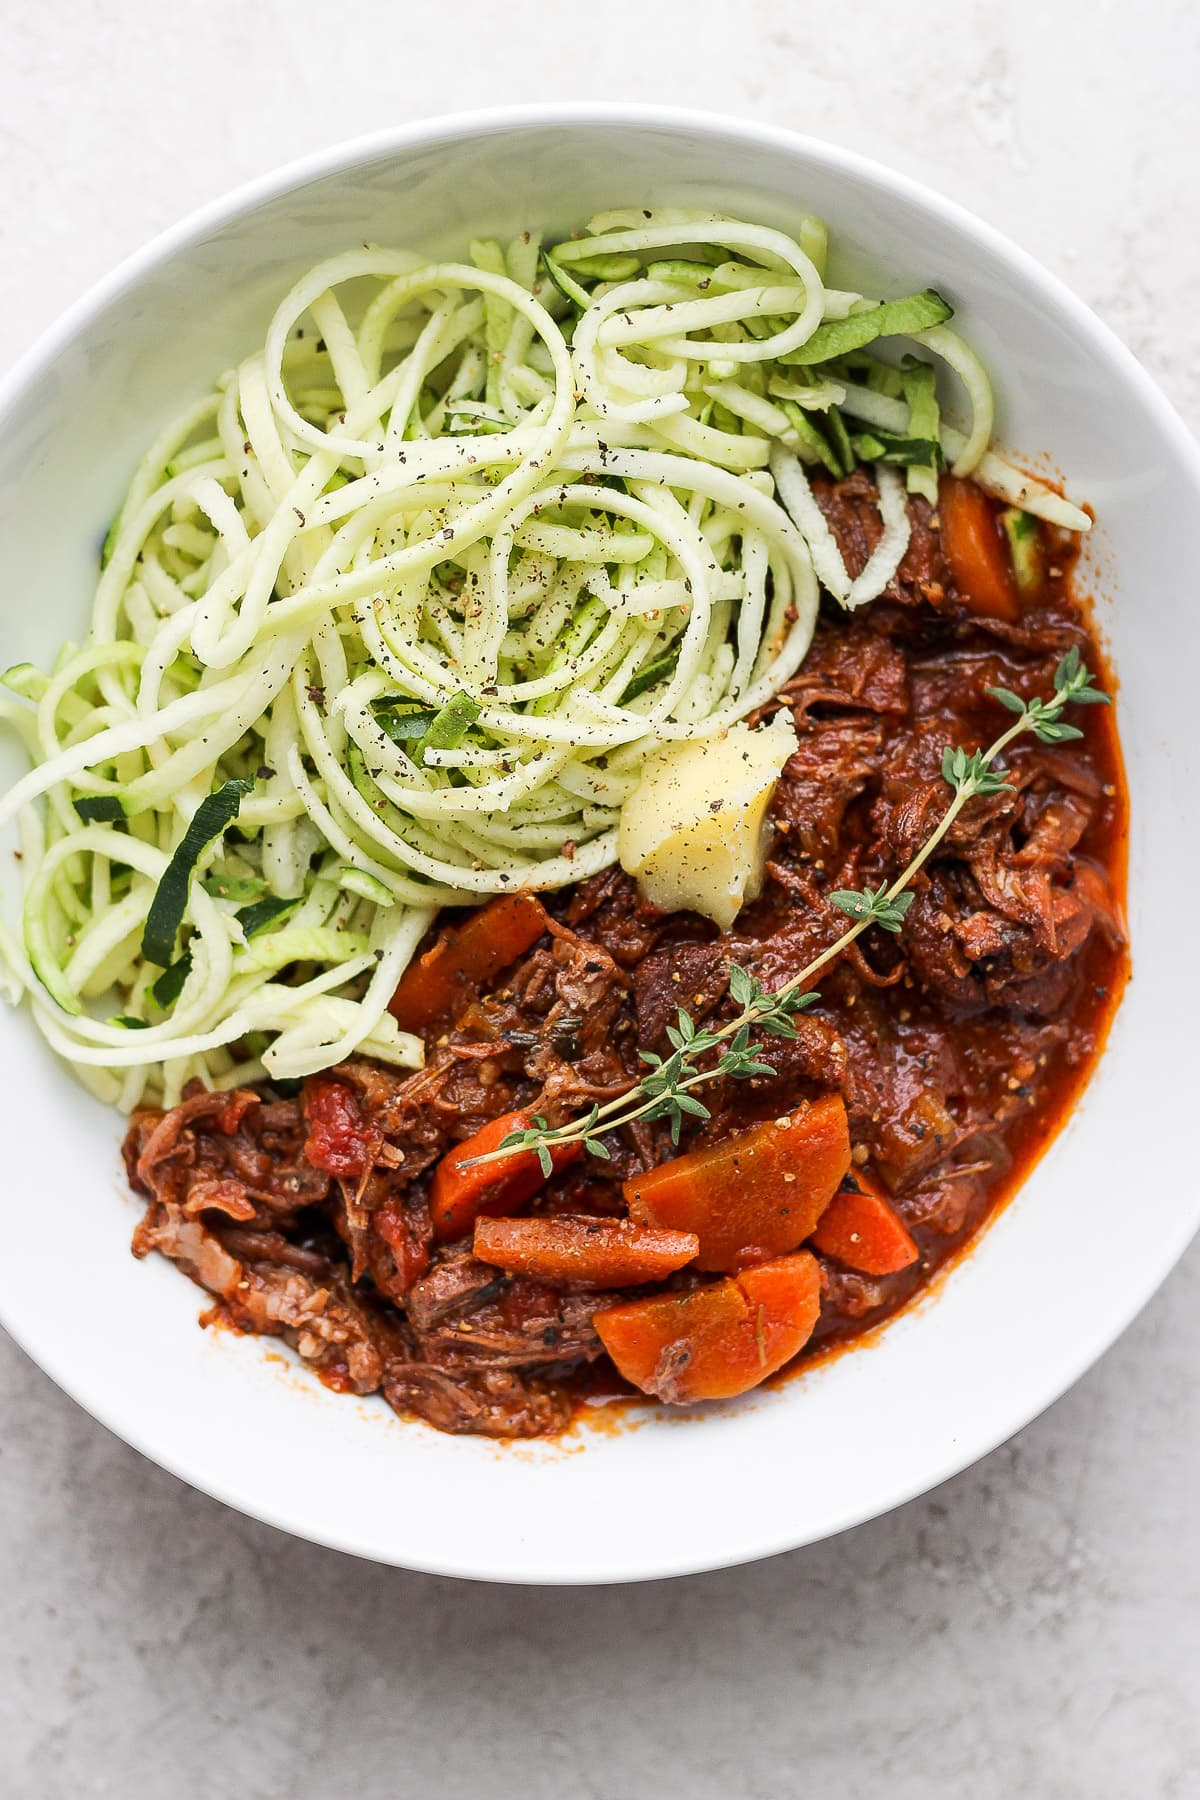 Bowl of beef ragu with zucchini noodles.